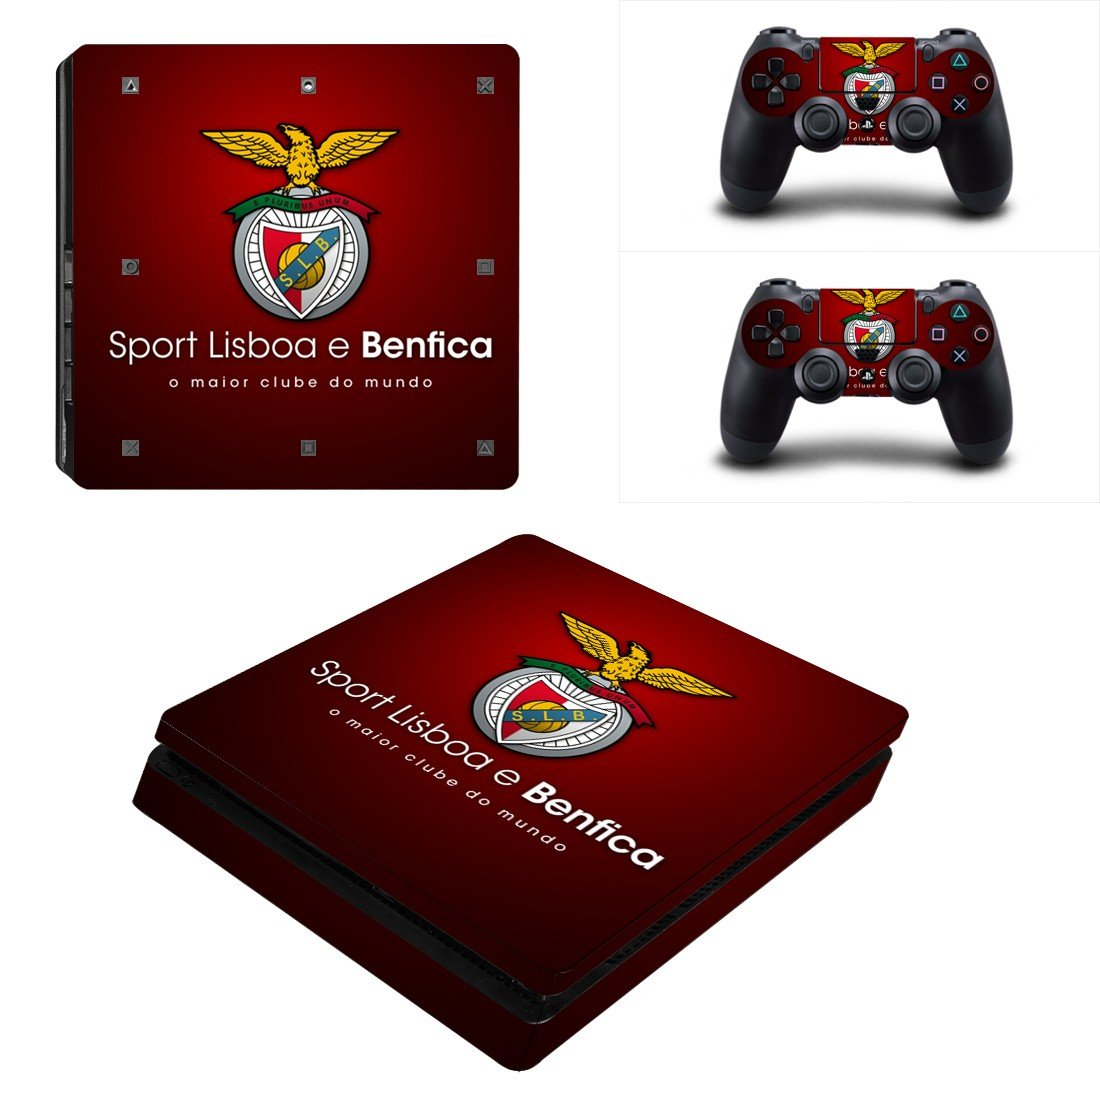 S.L. Benfica Play Station 4 slim skin decal for console and 2 controllers